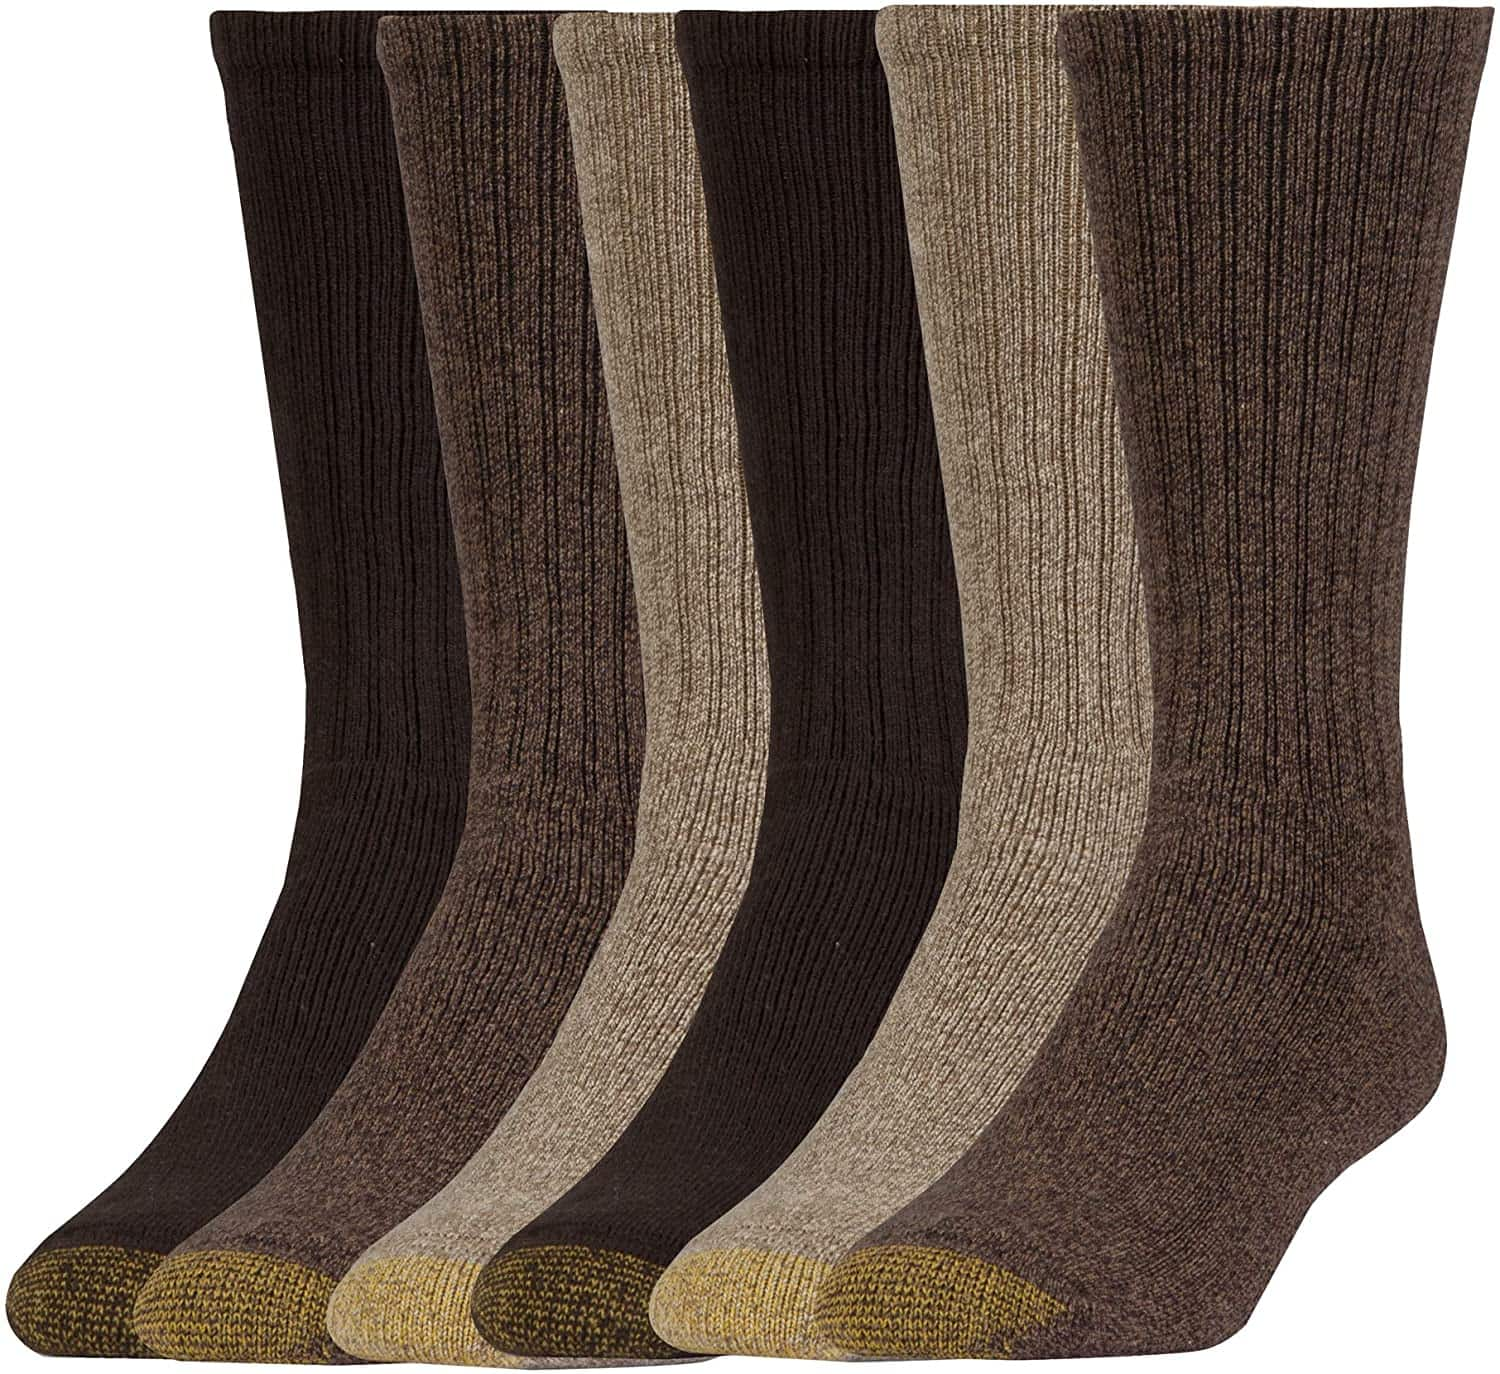 6-Pack Gold Toe Men's Harrington Crew Socks (shoe size 12-16) $9.90, 6-Pack Stanton Crew Socks (shoe sizes 6-13) $9.90 + free shipping w/ Prime or on orders over $25